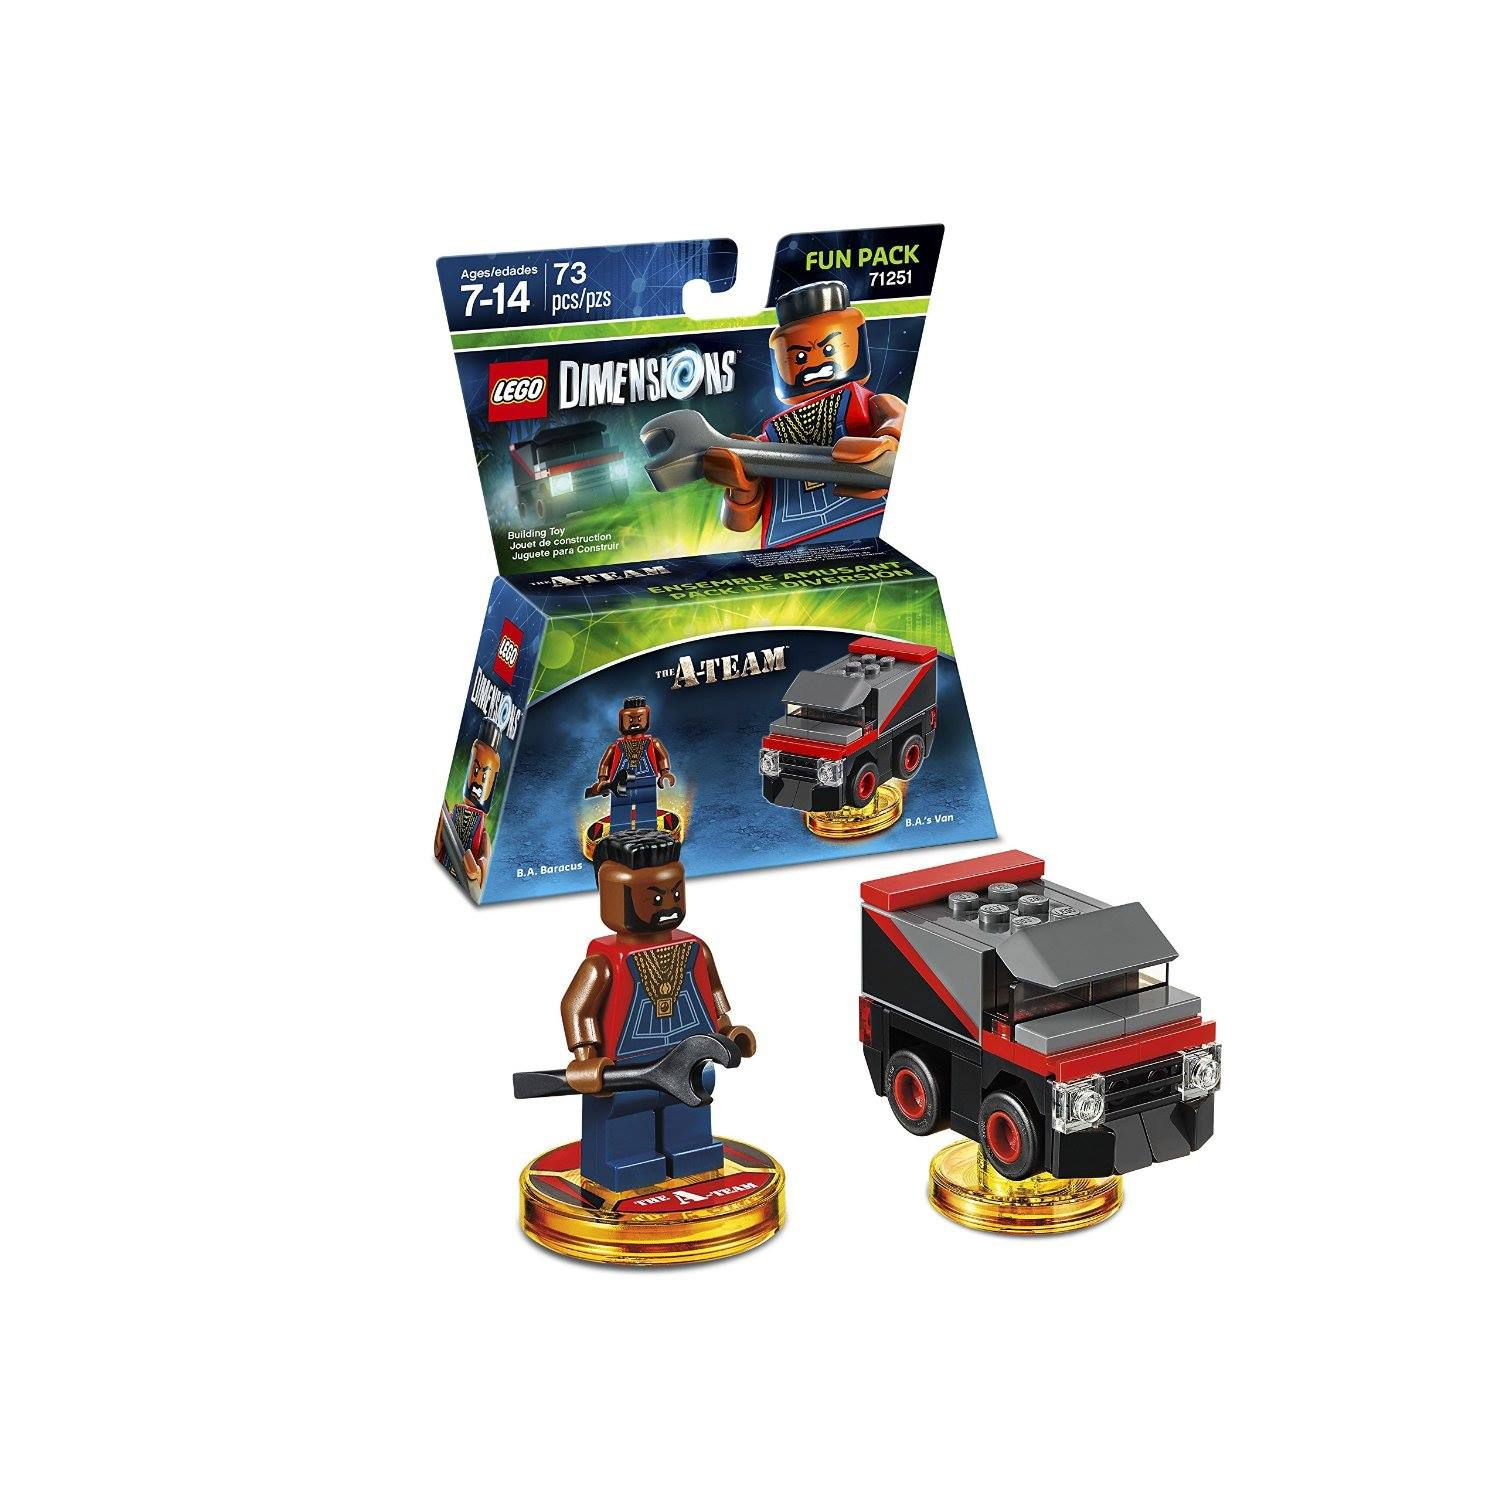 LEGO Dimensions 71251 Fun Pack A-Team LEGO_DIMENSIONS_71251_A-Team-03.jpg